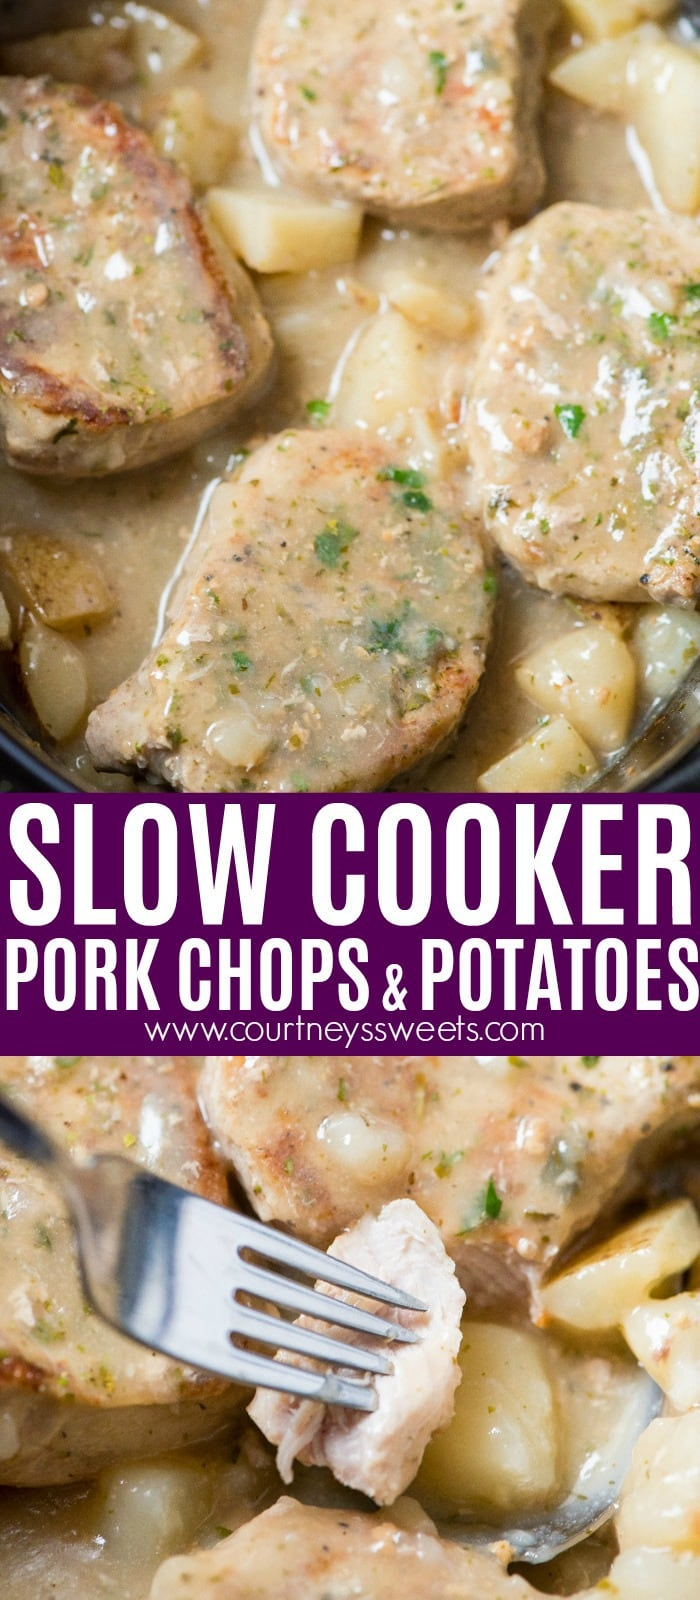 Slow Cooker Pork Chops and Potatoes always makes for a quick and easy slow cooker dinner!